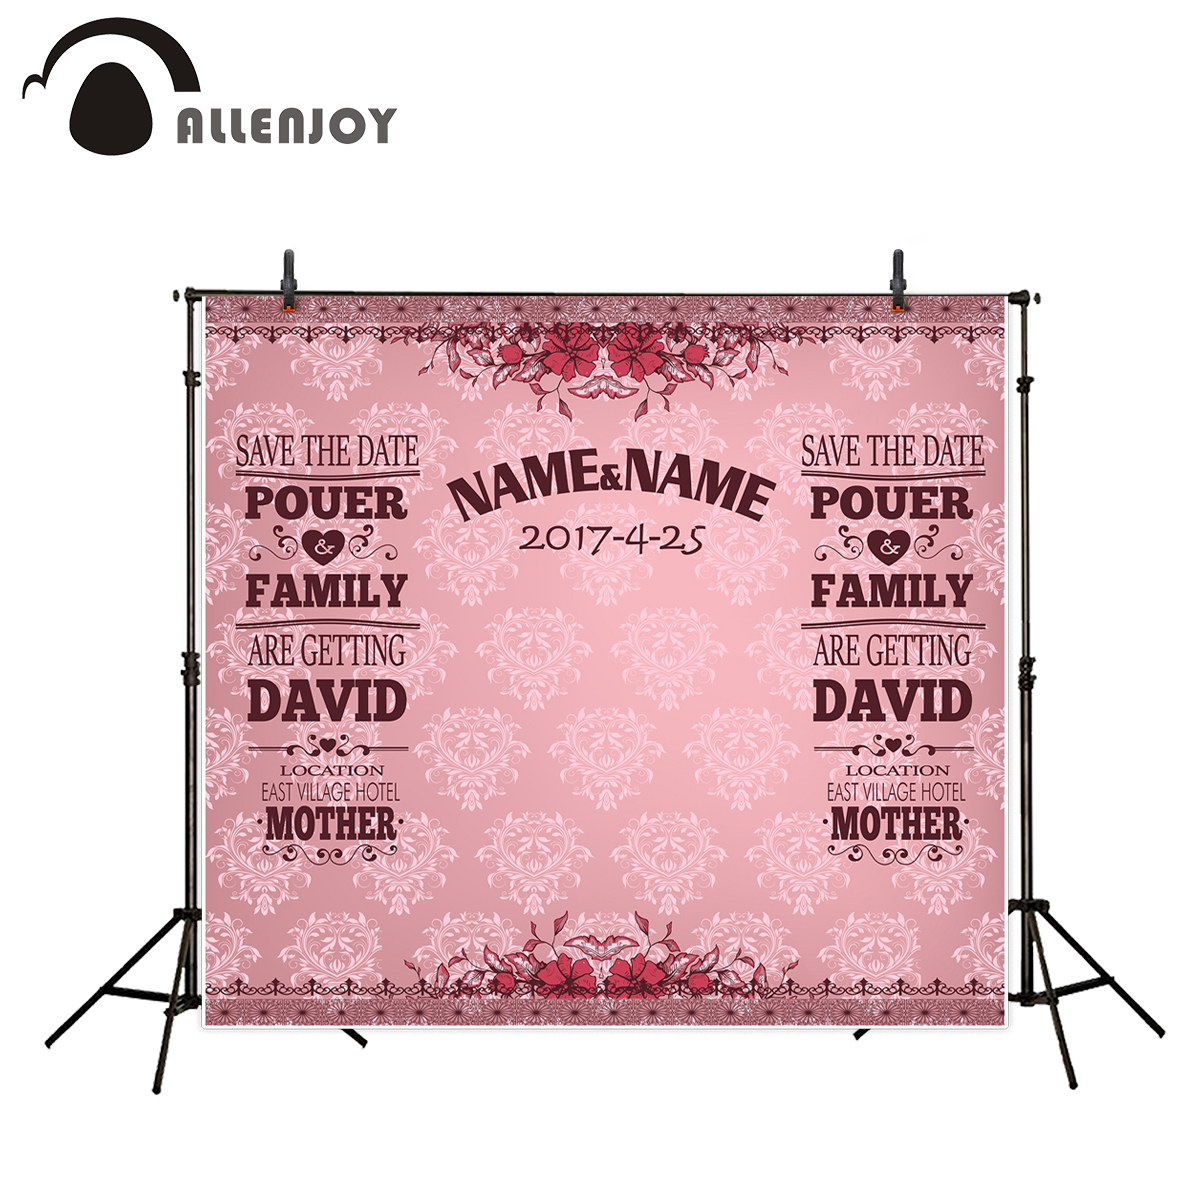 Allenjoy vinyl backdrops for photography damask pattern custom pink romantic love sweet celebration 300*200cm(10ft*6.5ft) 200 300cm 6 5 10ft studio backdrop for alentine s day vinyl custom photography letter combinations romantic colorful for youth